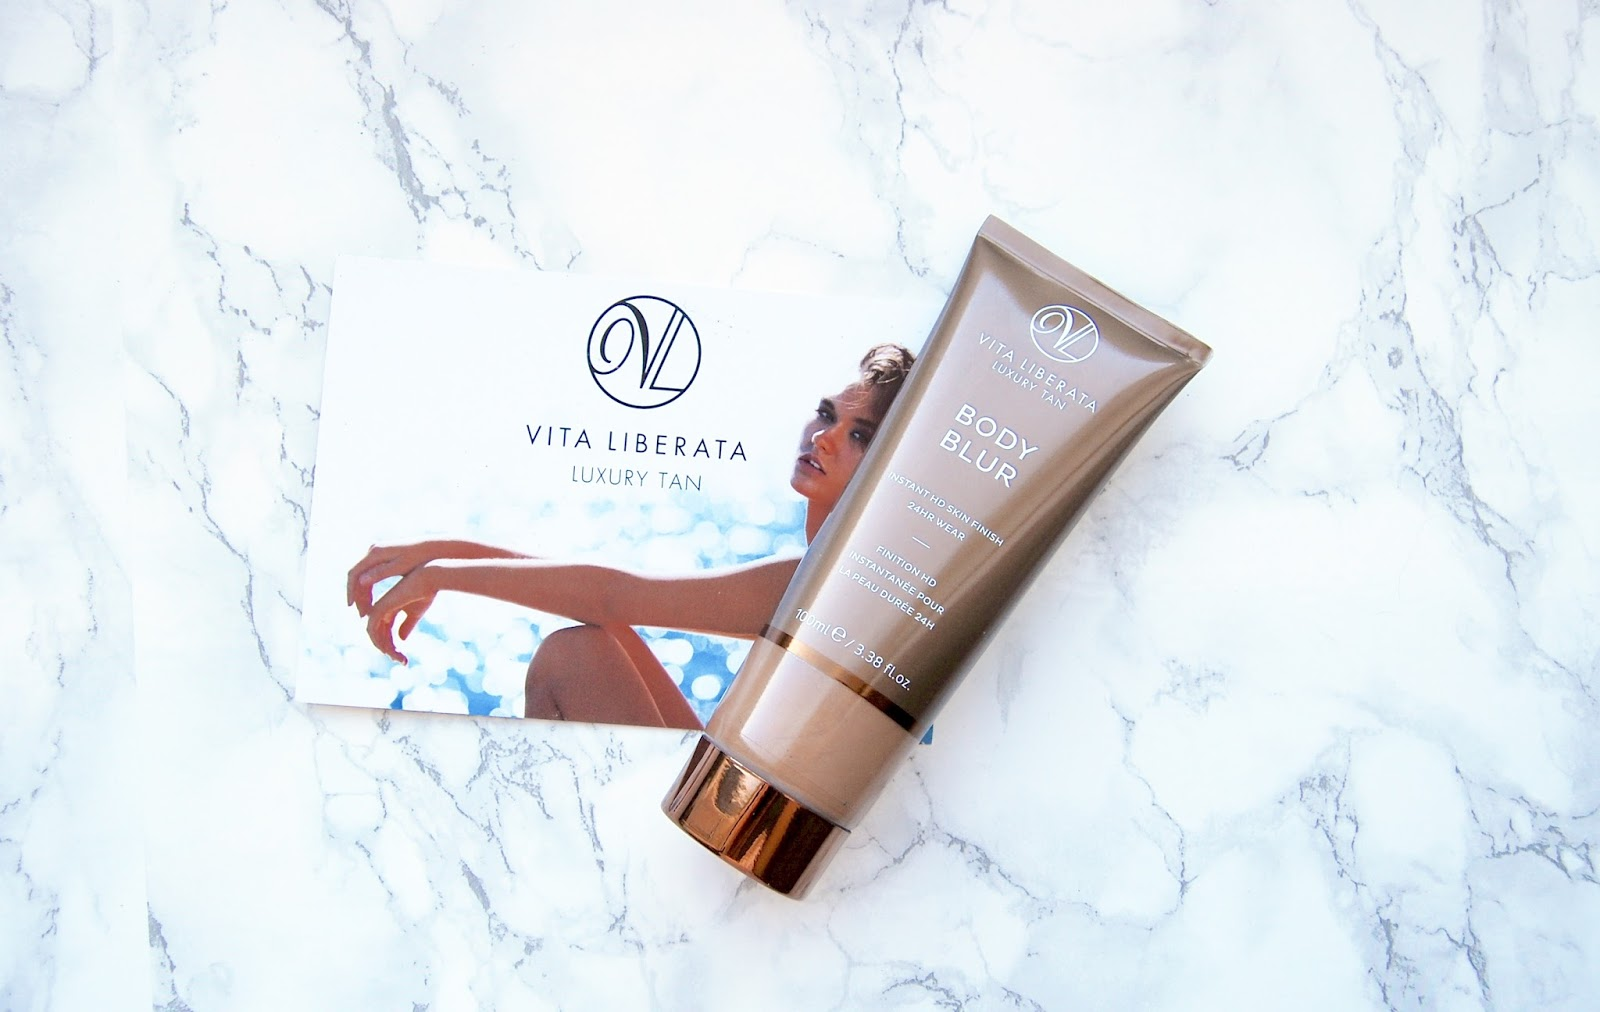 Read my review of Vita Liberata Body Blur fake tan